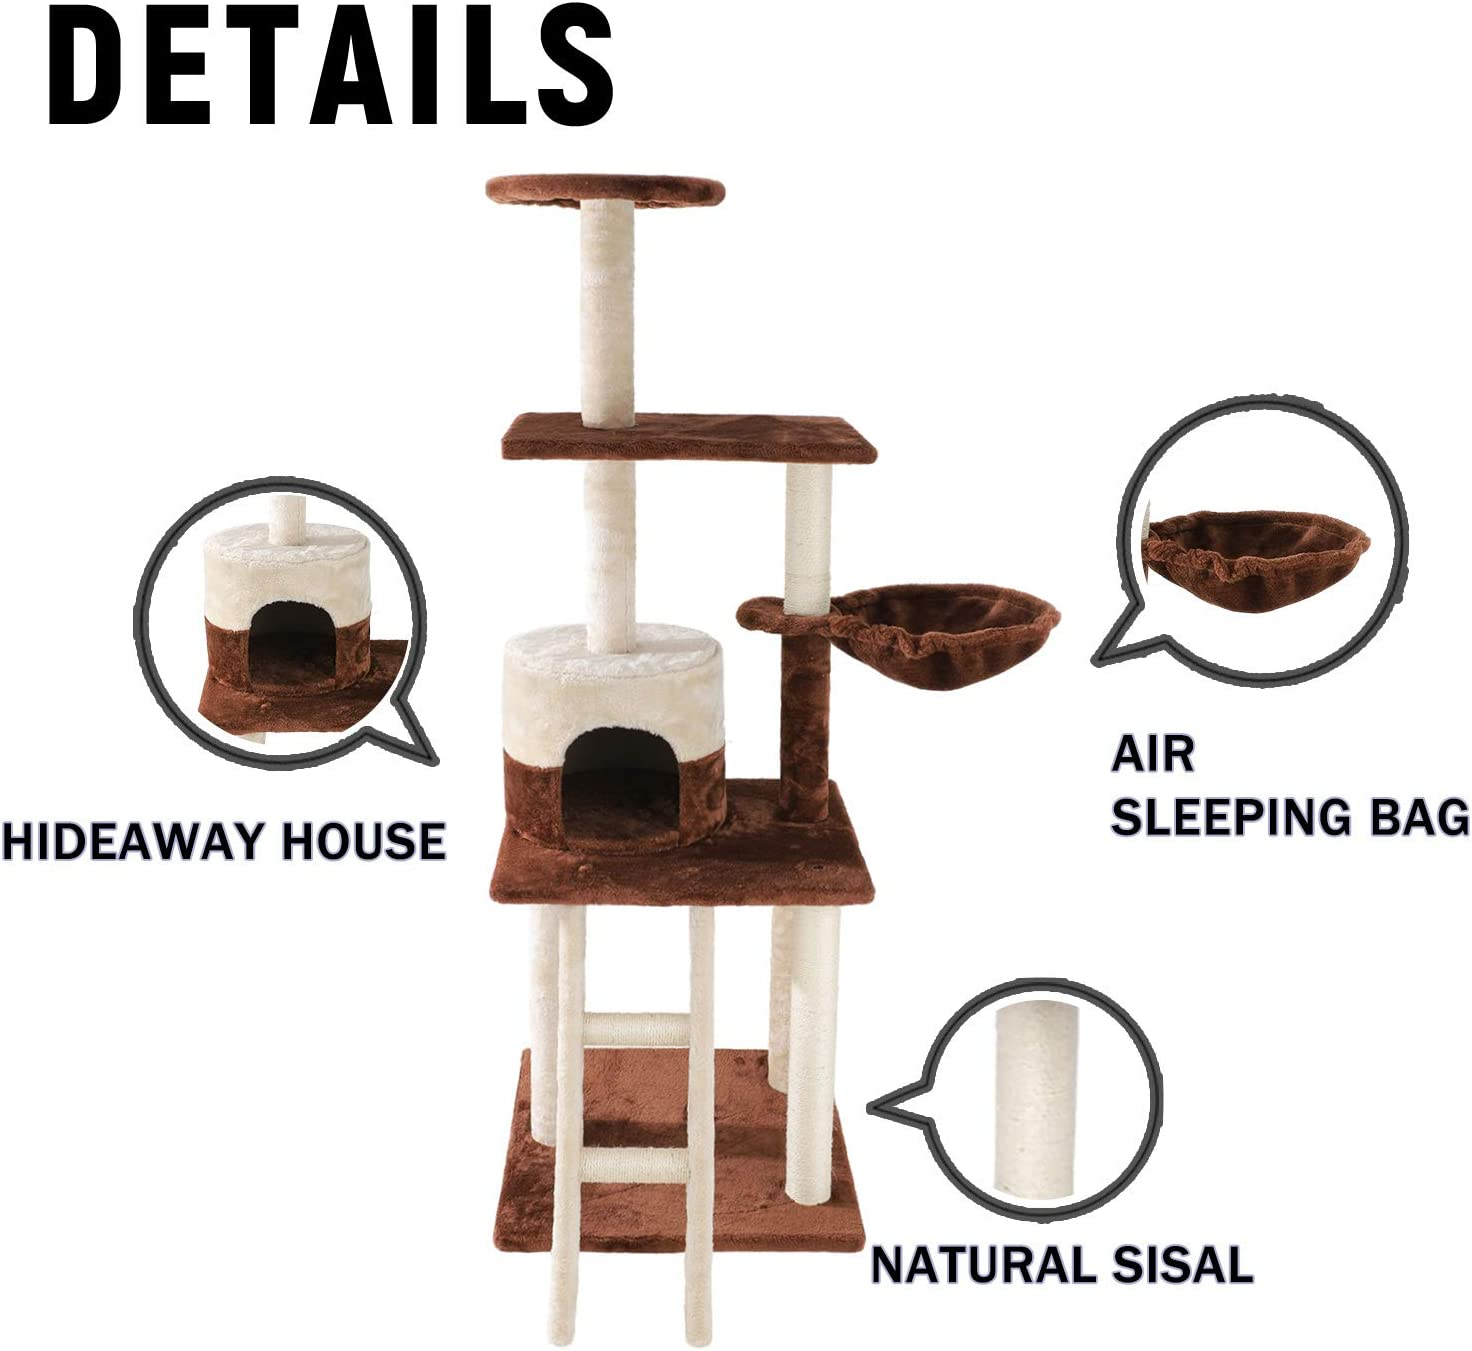 Poils bebe Cat Activity Tree Tower 54-inch Multilevel Play Scratching Post with Ladder Platform Hammock Condo and House for Small Medium and Large Cats and Kittens